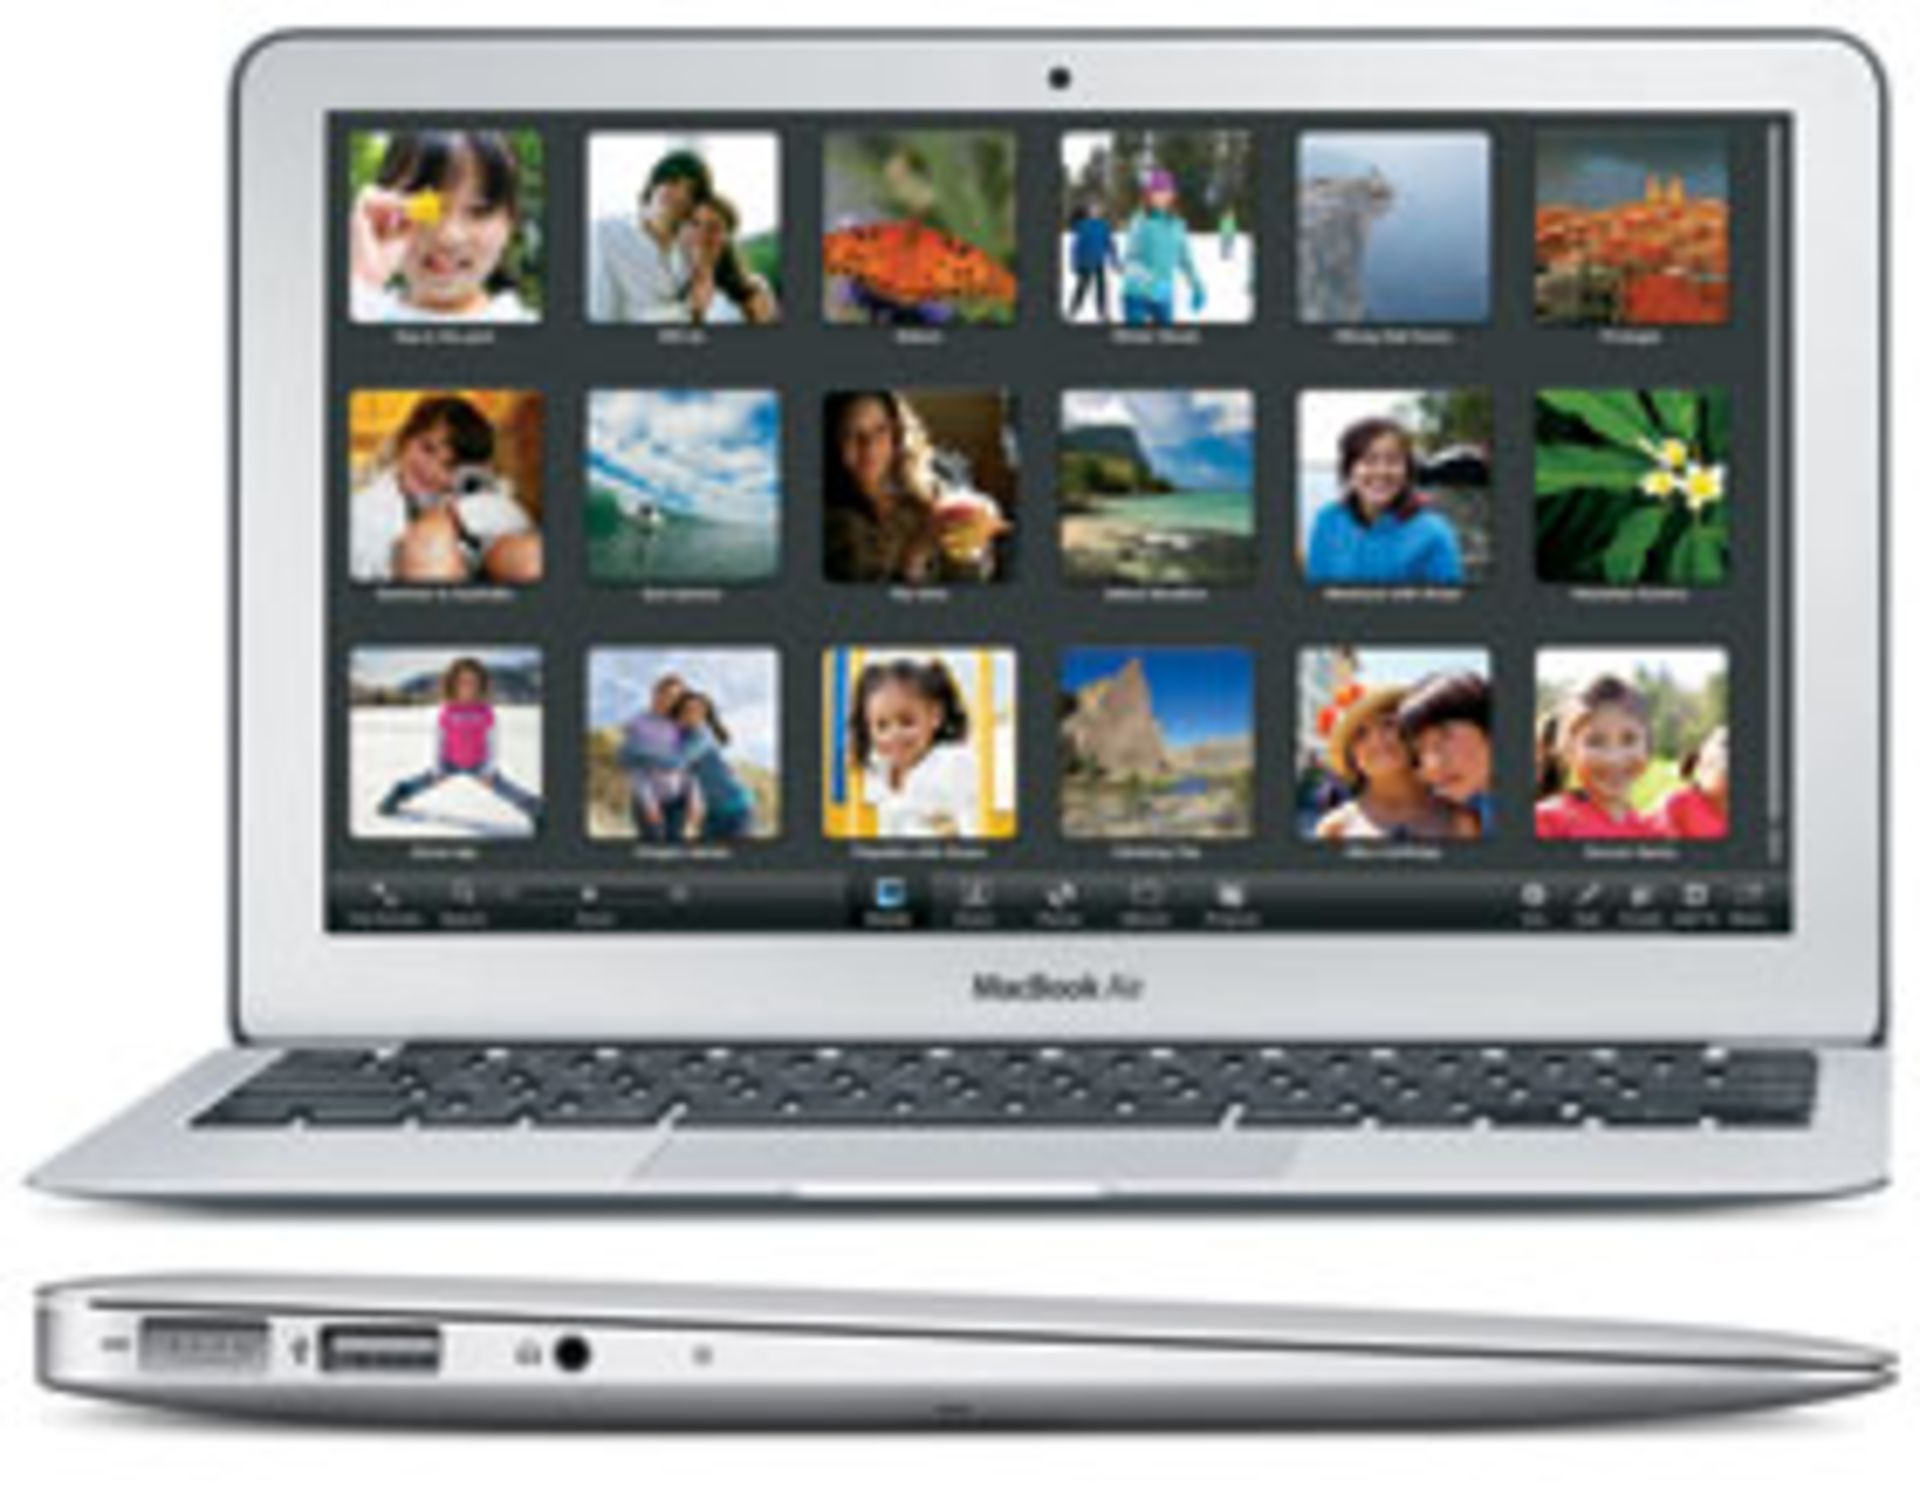 Lot 60038 - V Grade B Macbook Air 11.6 Inch Core 2 Duo - 64GB SSD - A1370 - Available Approx 7 Working Days